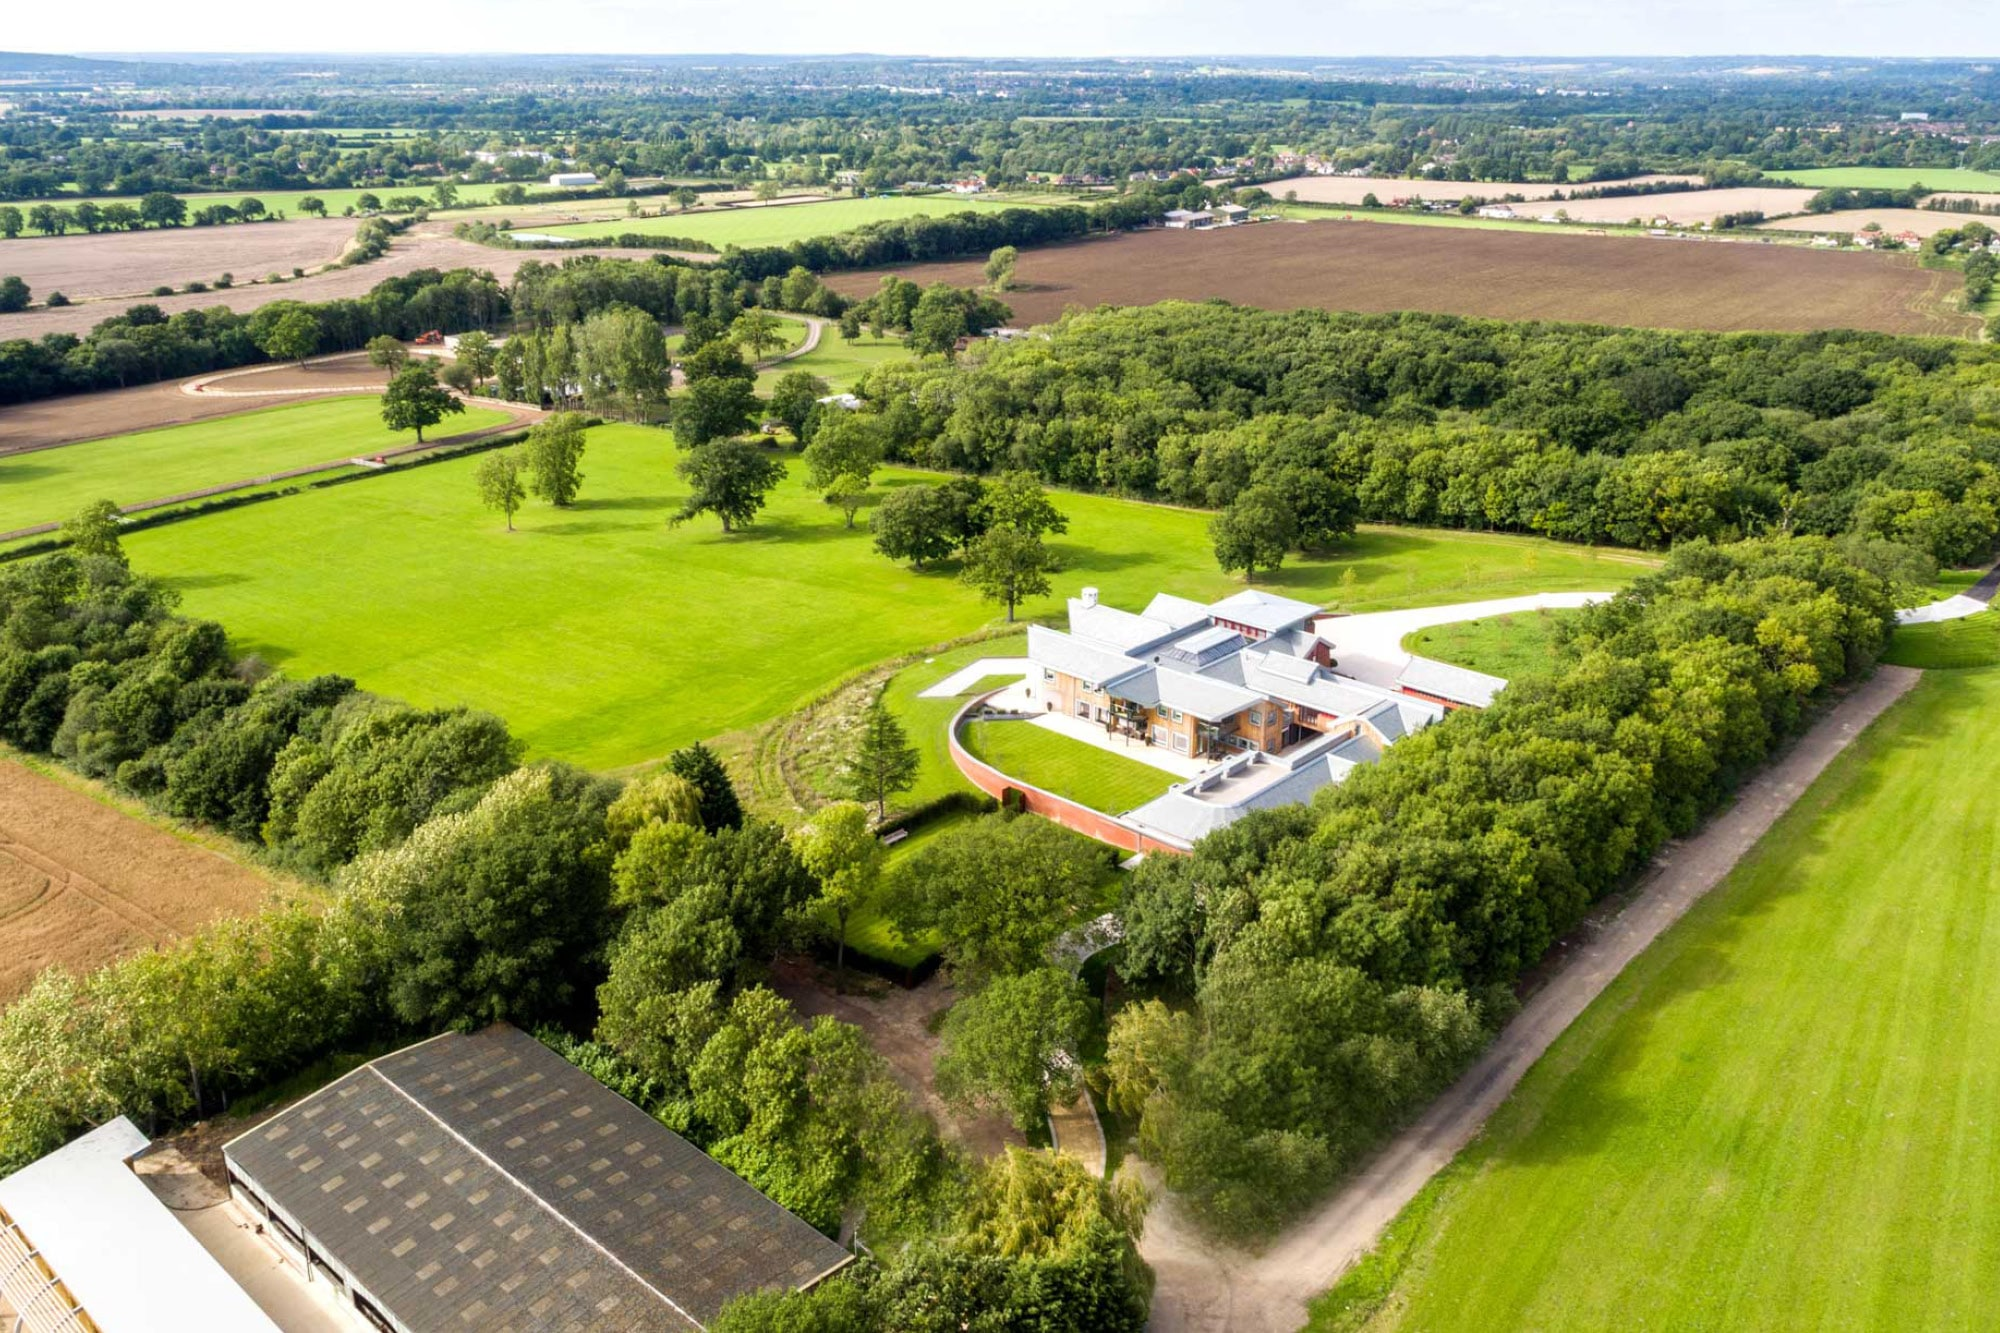 A birdseye view of Harford Manor Estate in Holyport Berkshire